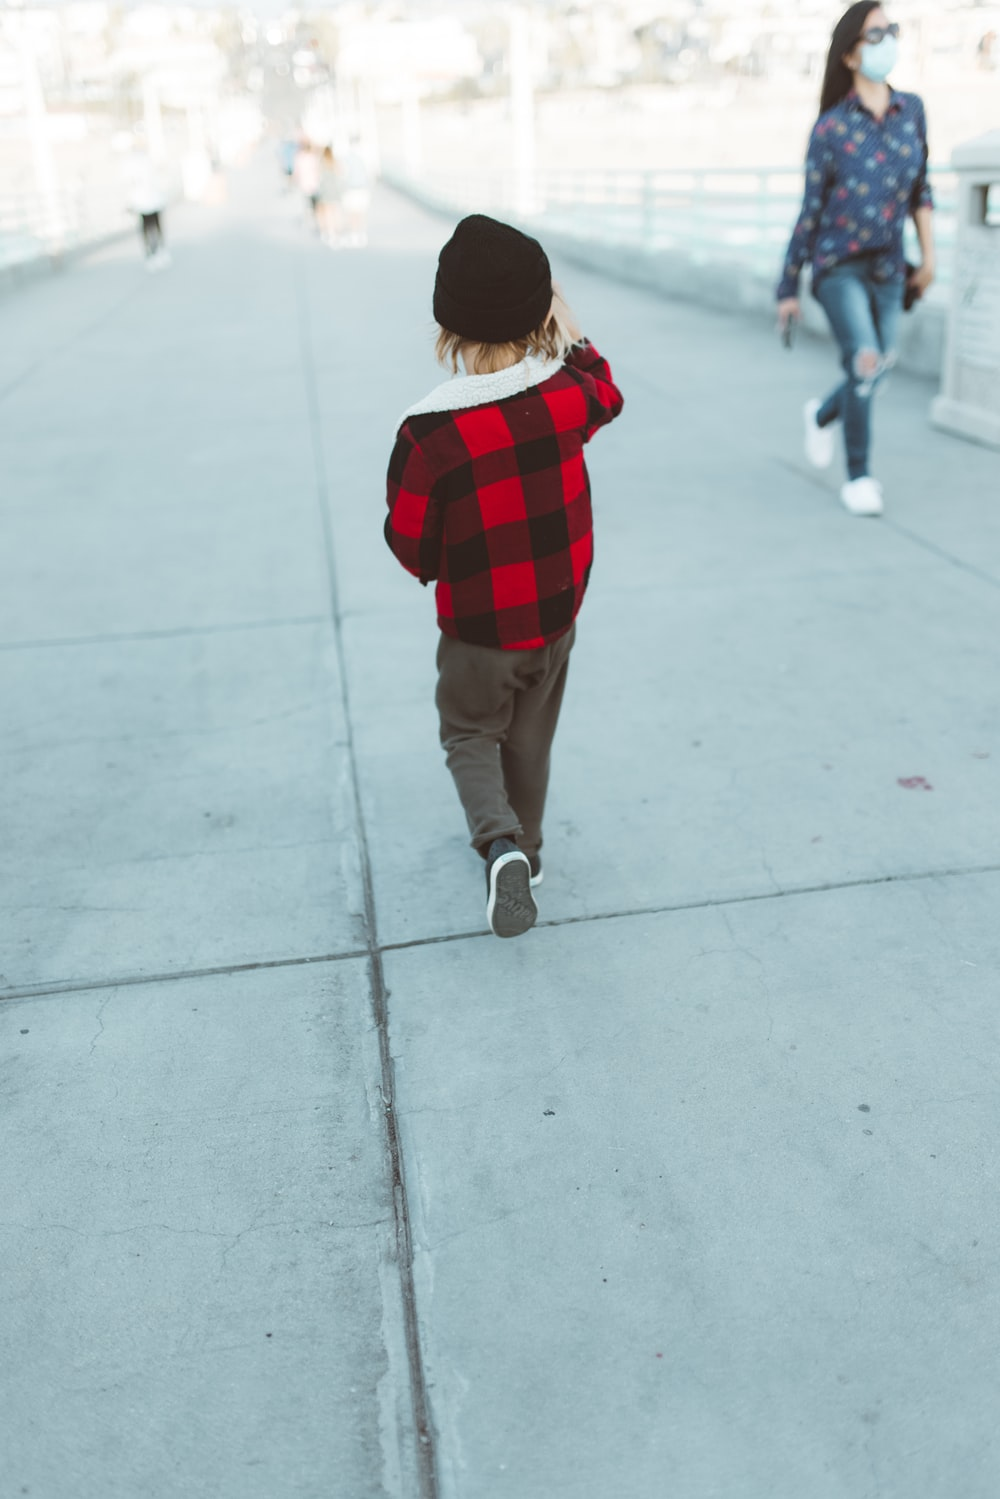 child in red and black plaid shirt and brown pants walking on gray concrete floor